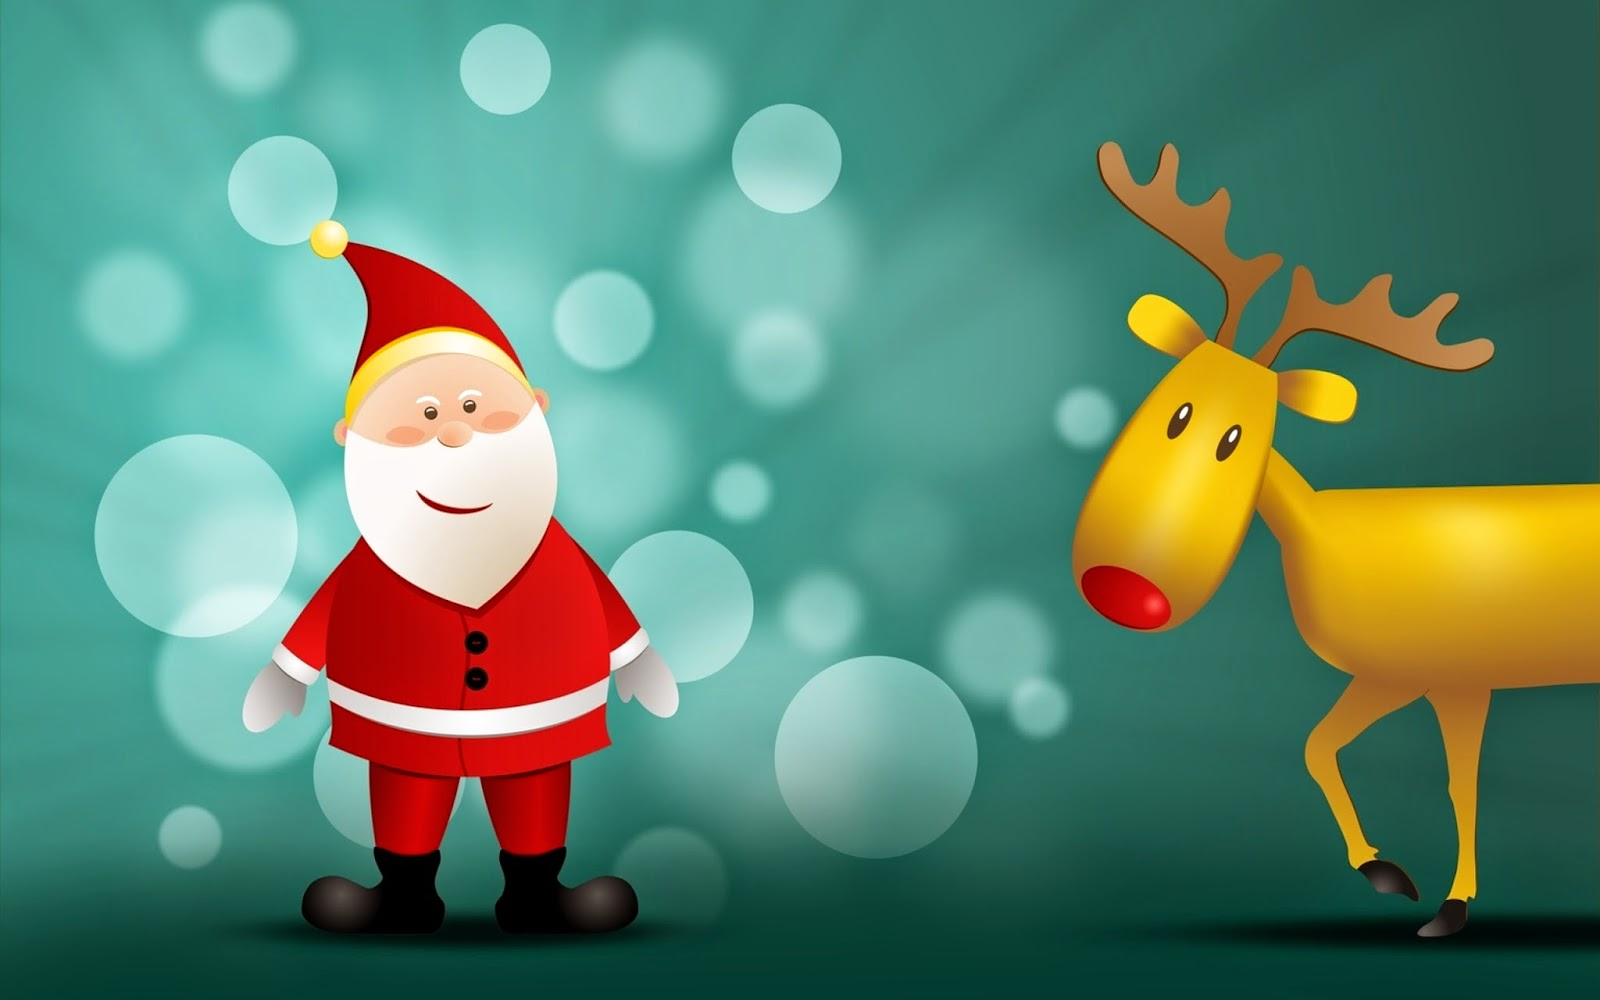 Santa-Claus-with-reindeer-cartoon-HD-photo-image-free-download.jpg